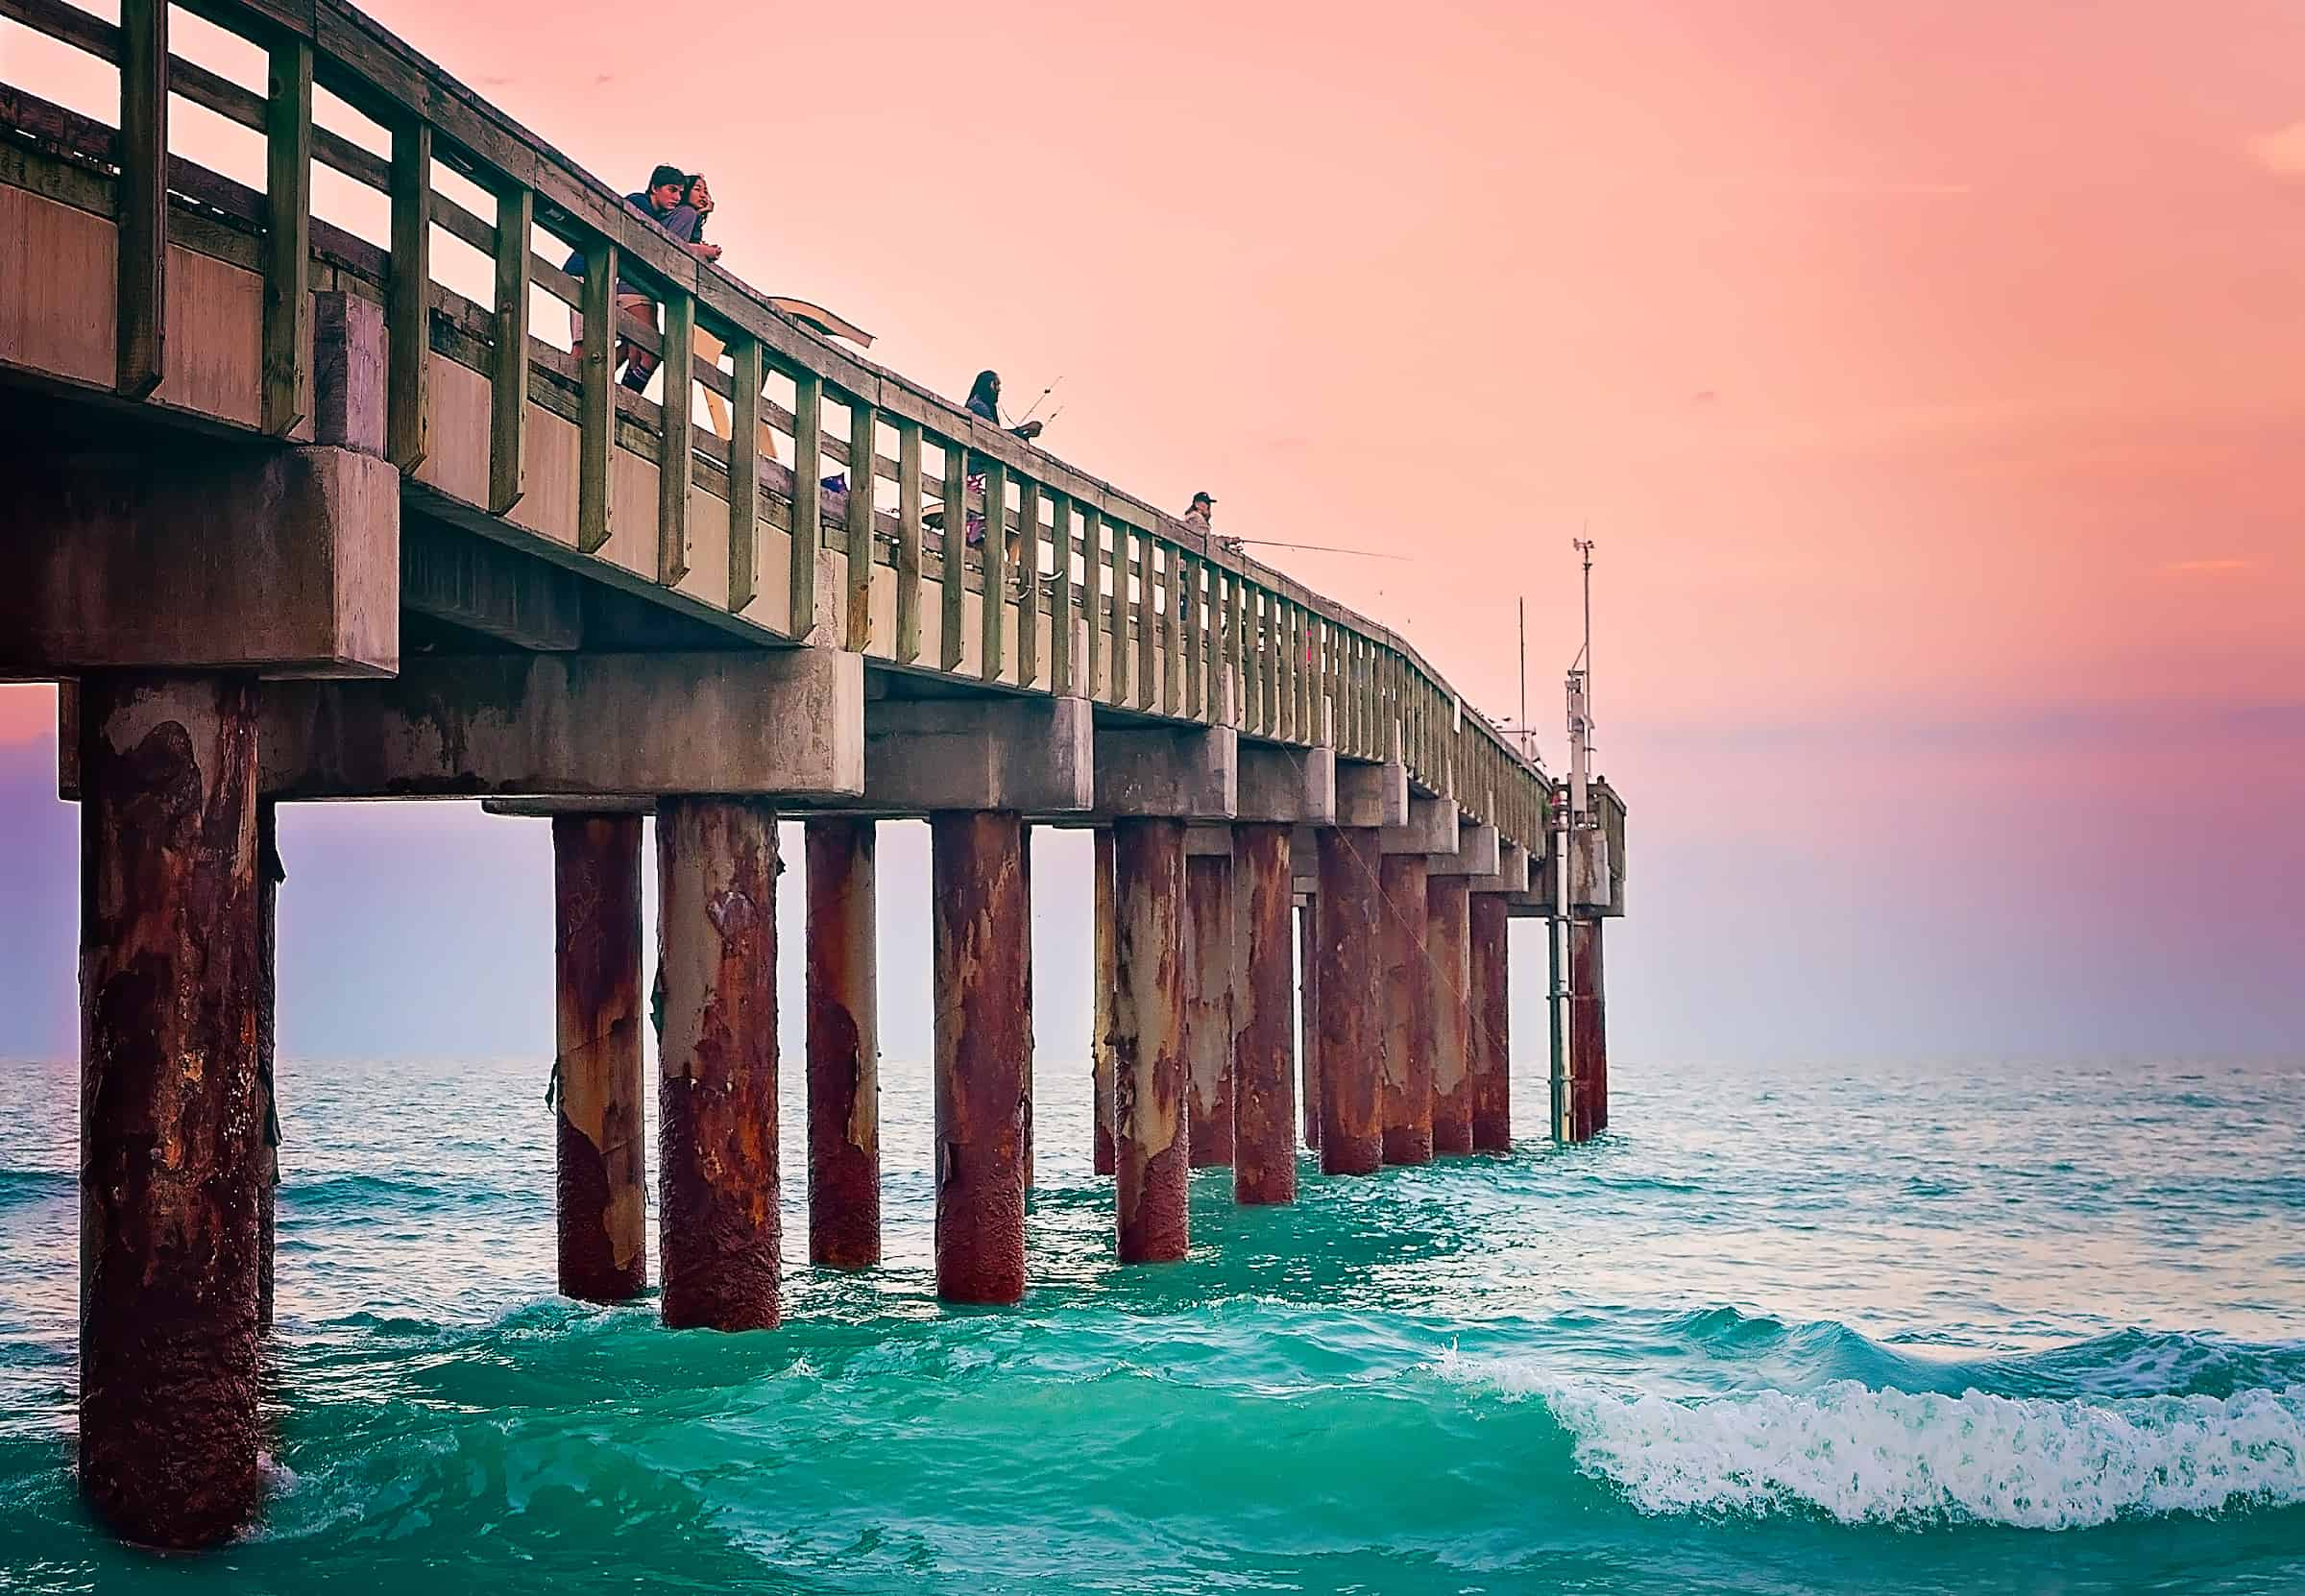 Fishing at St. Johns County Ocean Pier in St. Augustine, Florida